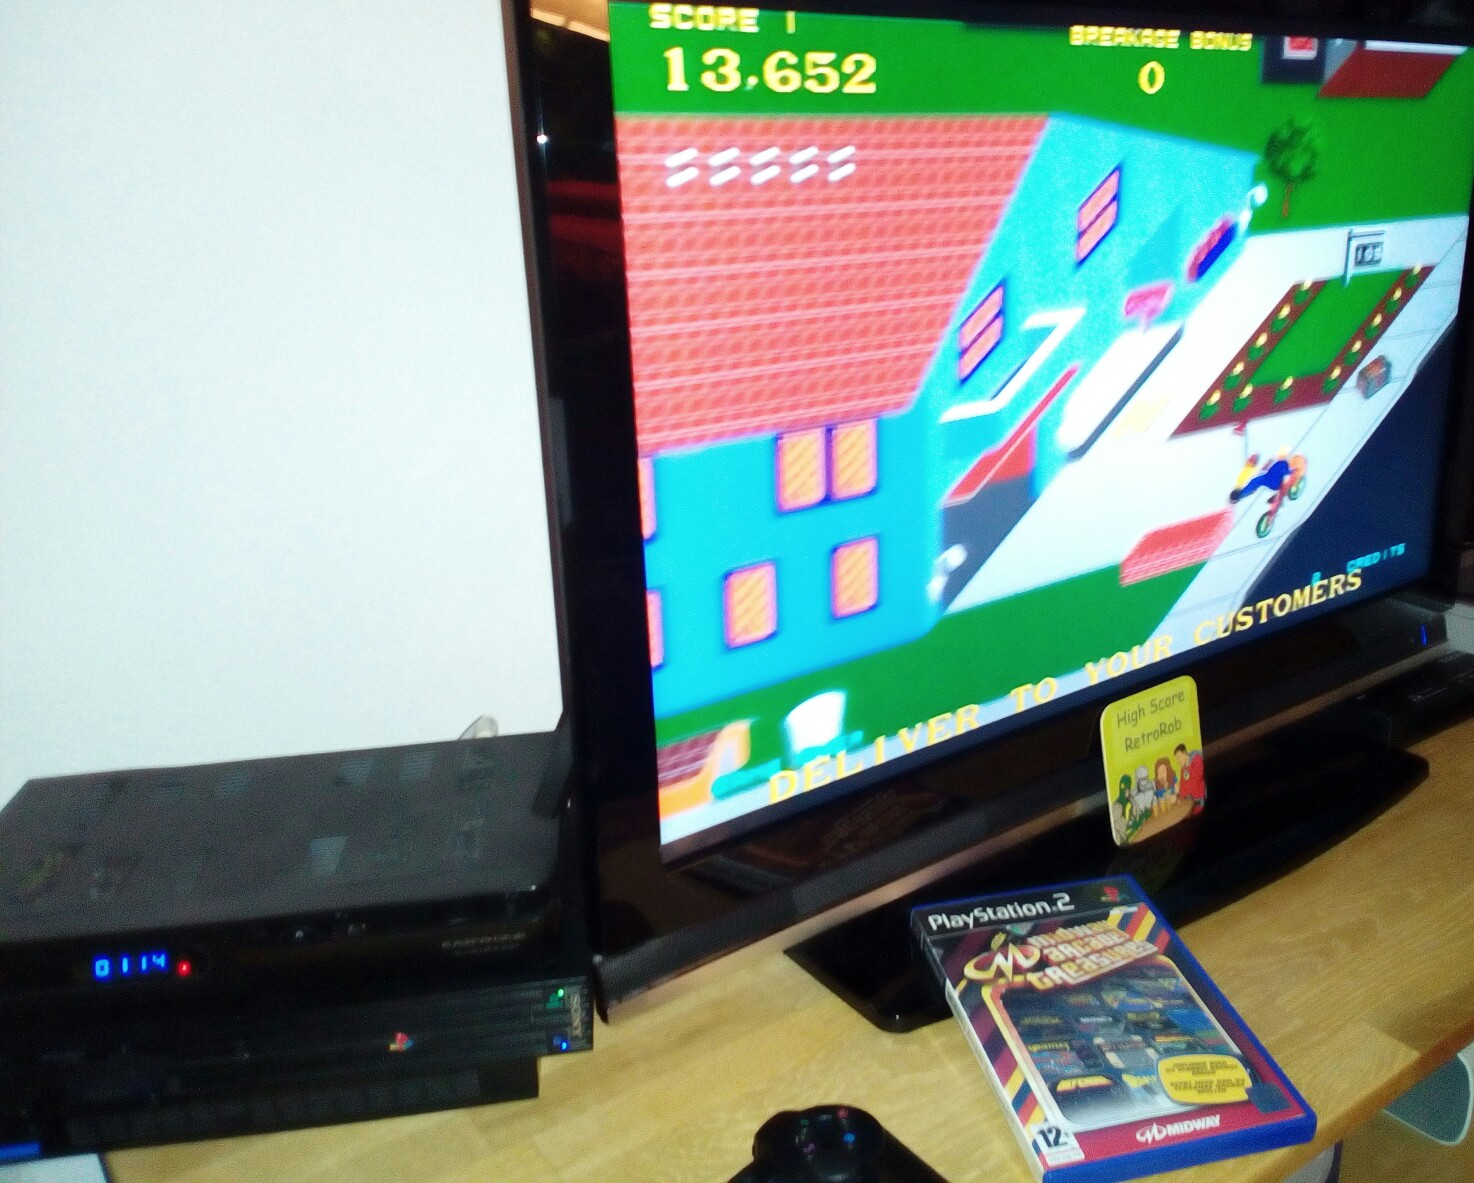 Midway Arcade Treasures: Paperboy 13,652 points